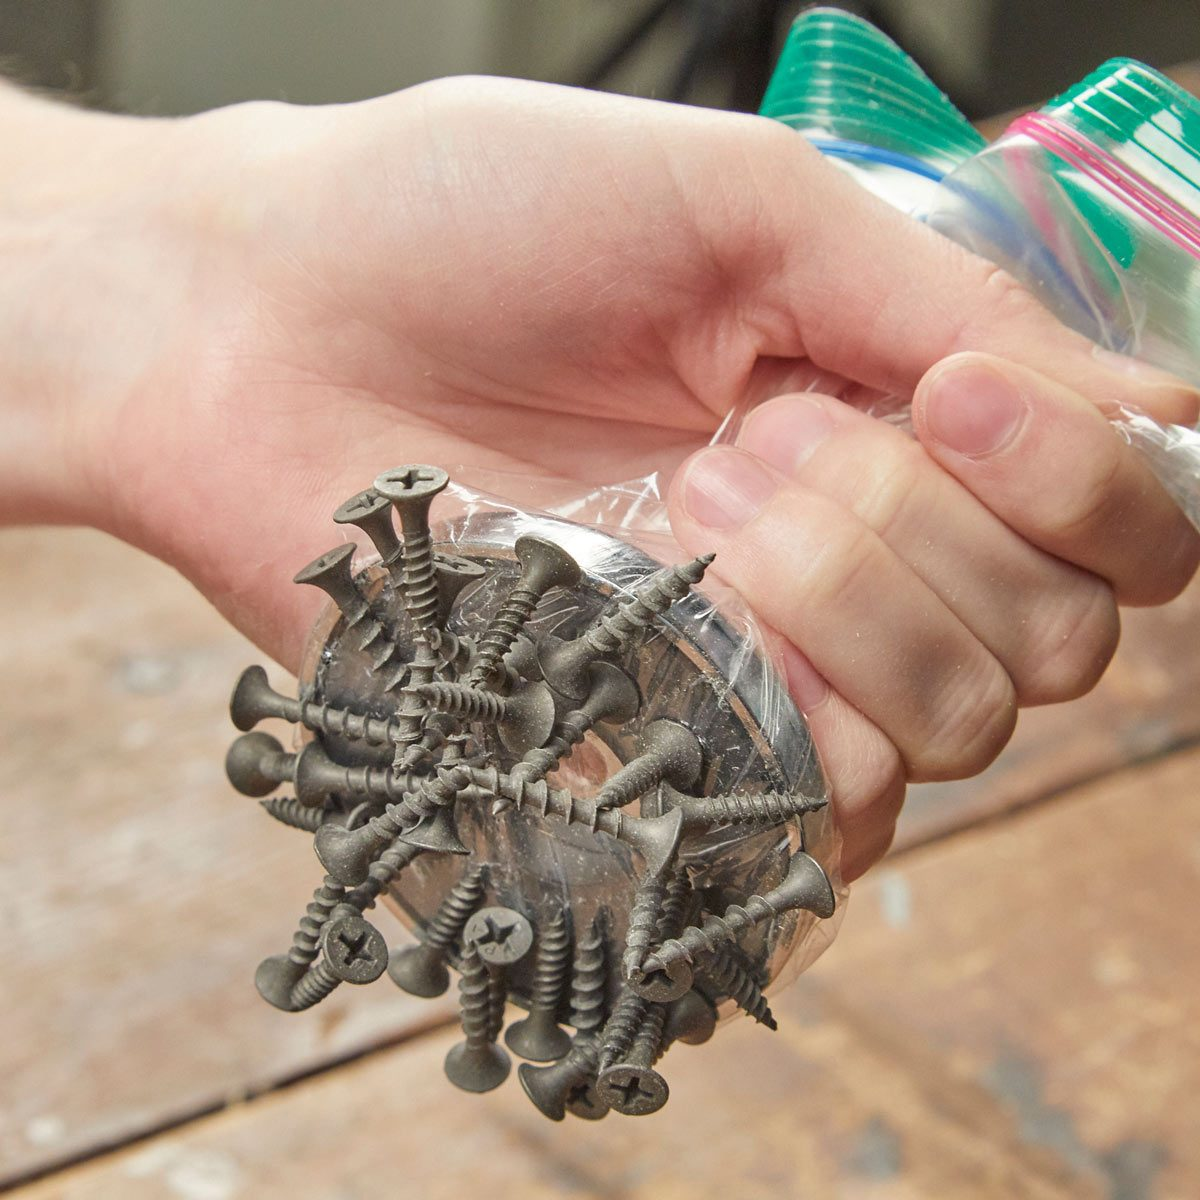 HH pick up a spill of screws with magnet or plastic bag